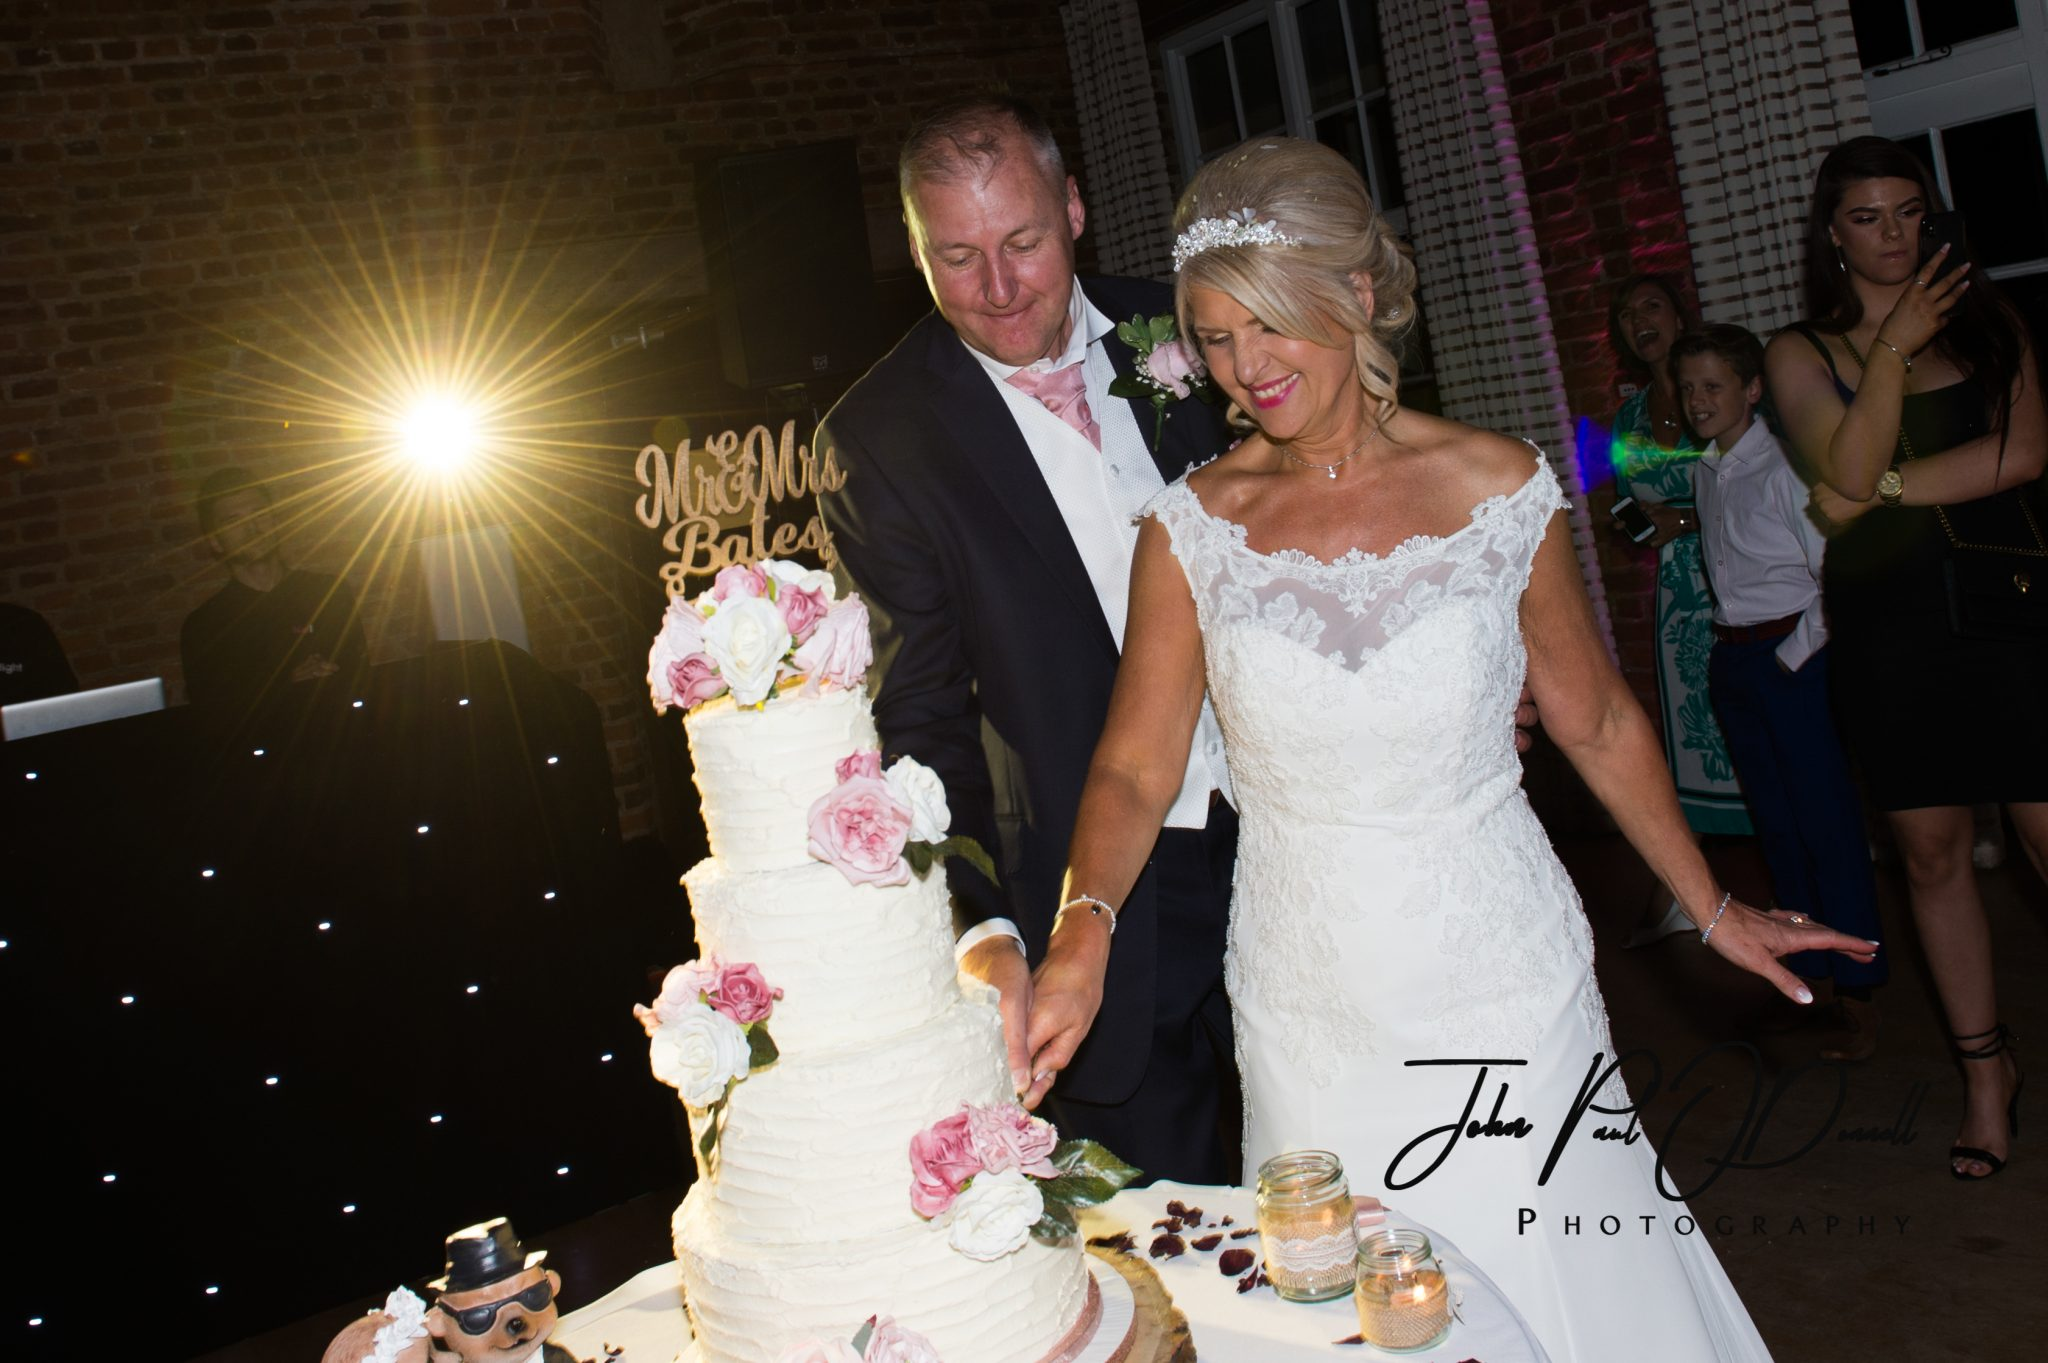 Julie and Eddies wedding at Forty Hall Enfield